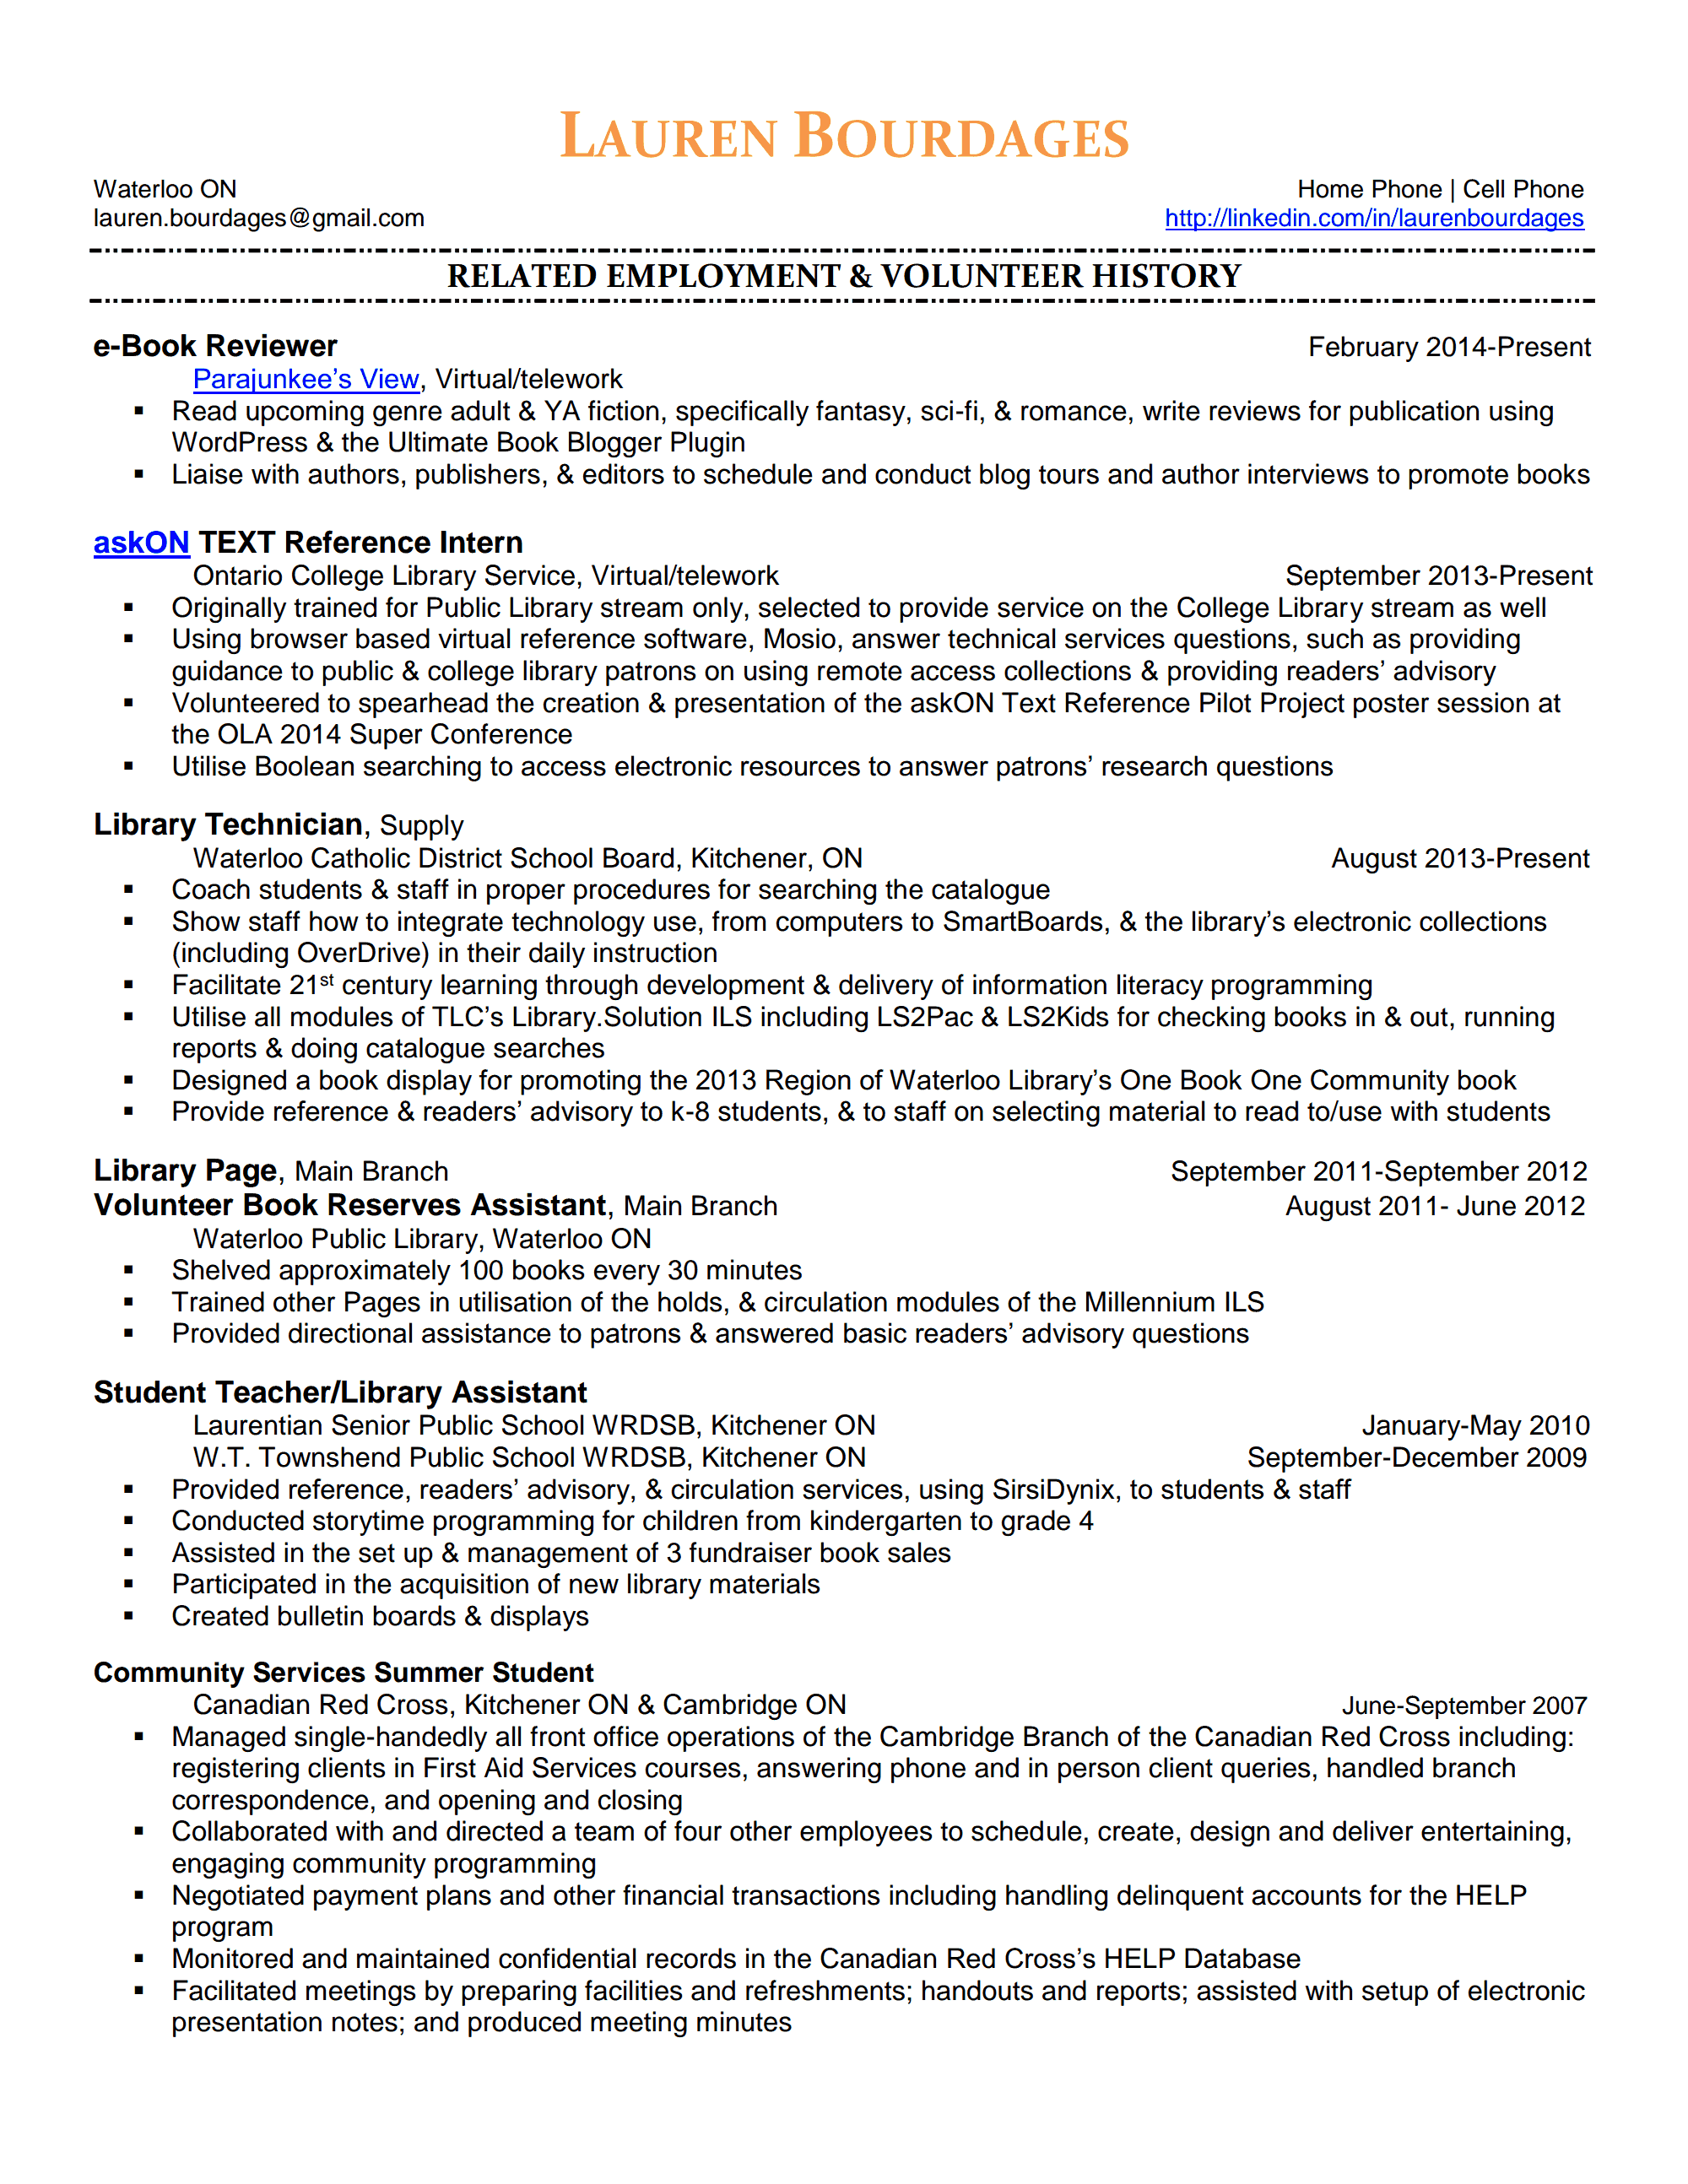 Career Builder Resume Template Urban Pie Sample Resume Of Medical Student Personal Statement